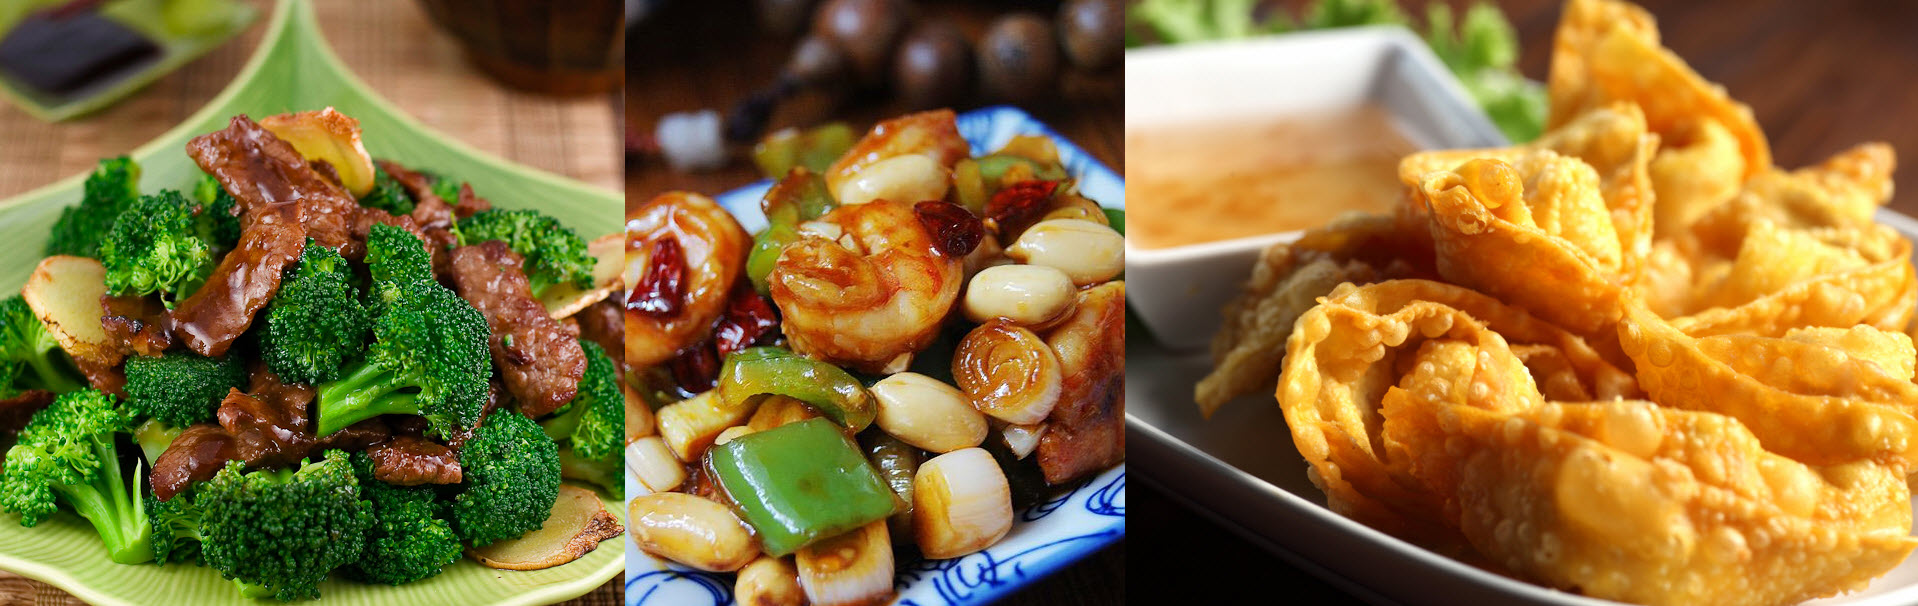 ABC Chinese Restaurant - Order Online in West Valley City